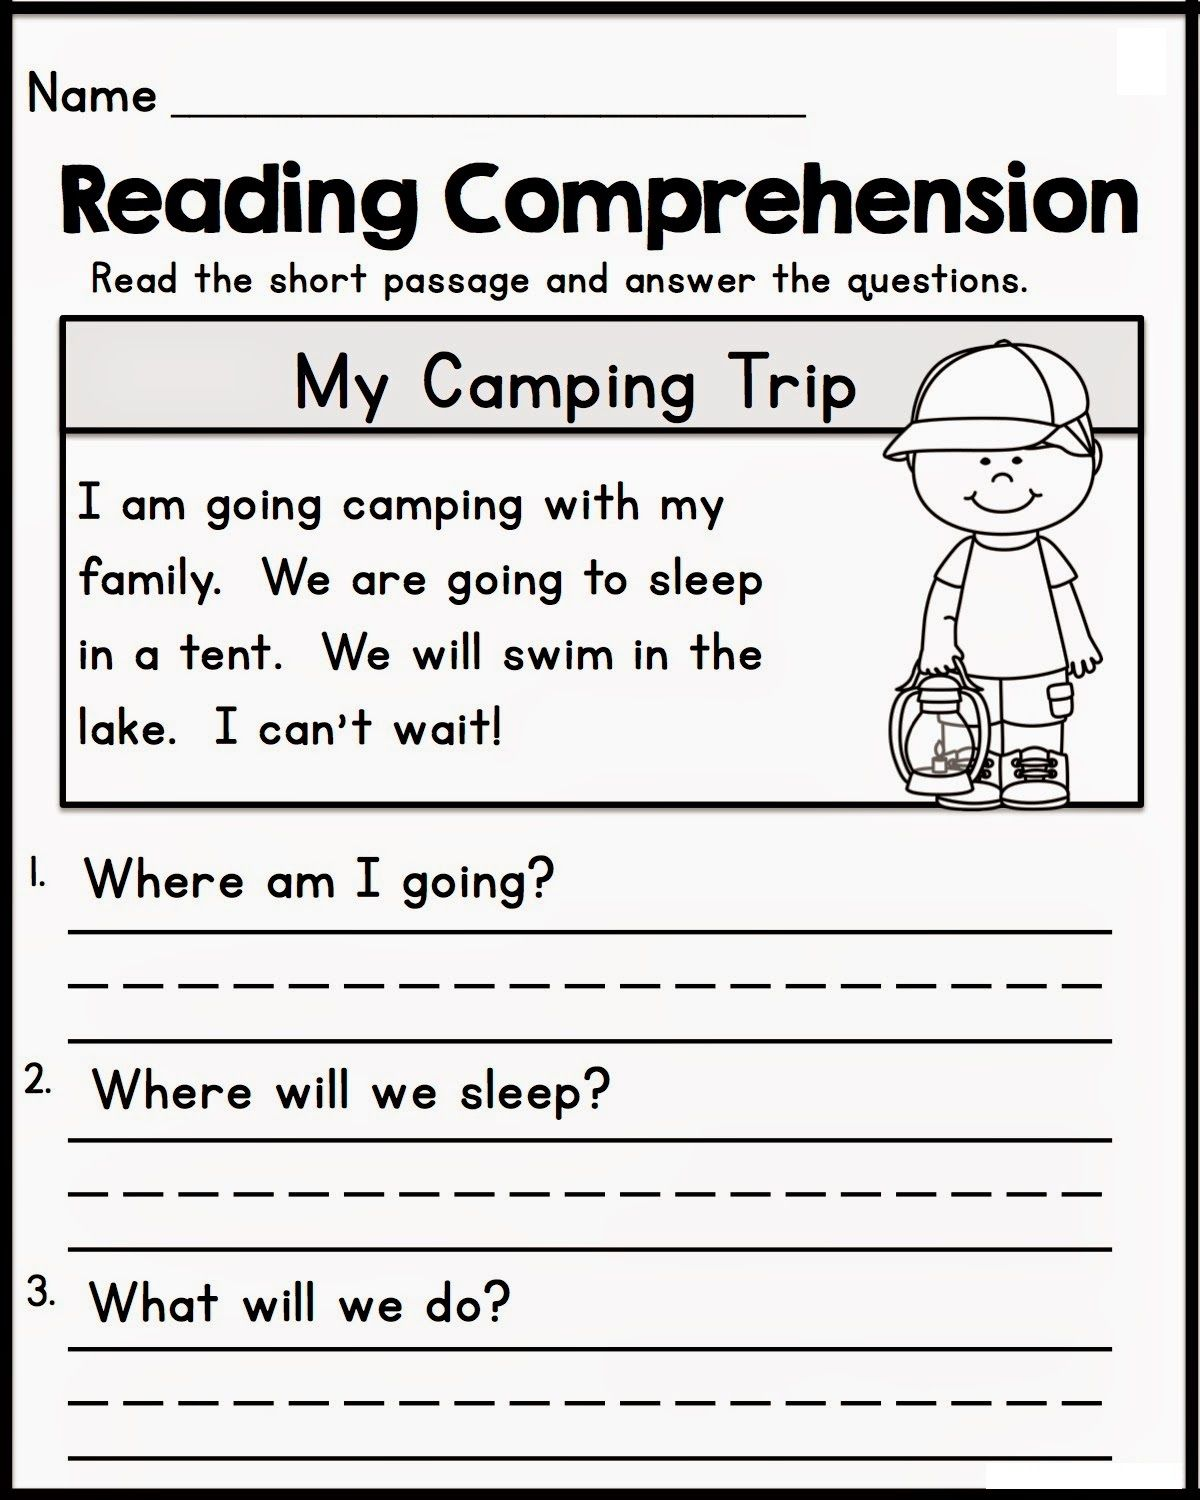 Free Reading Comprehension Online Worksheets for Kids | Learning ...